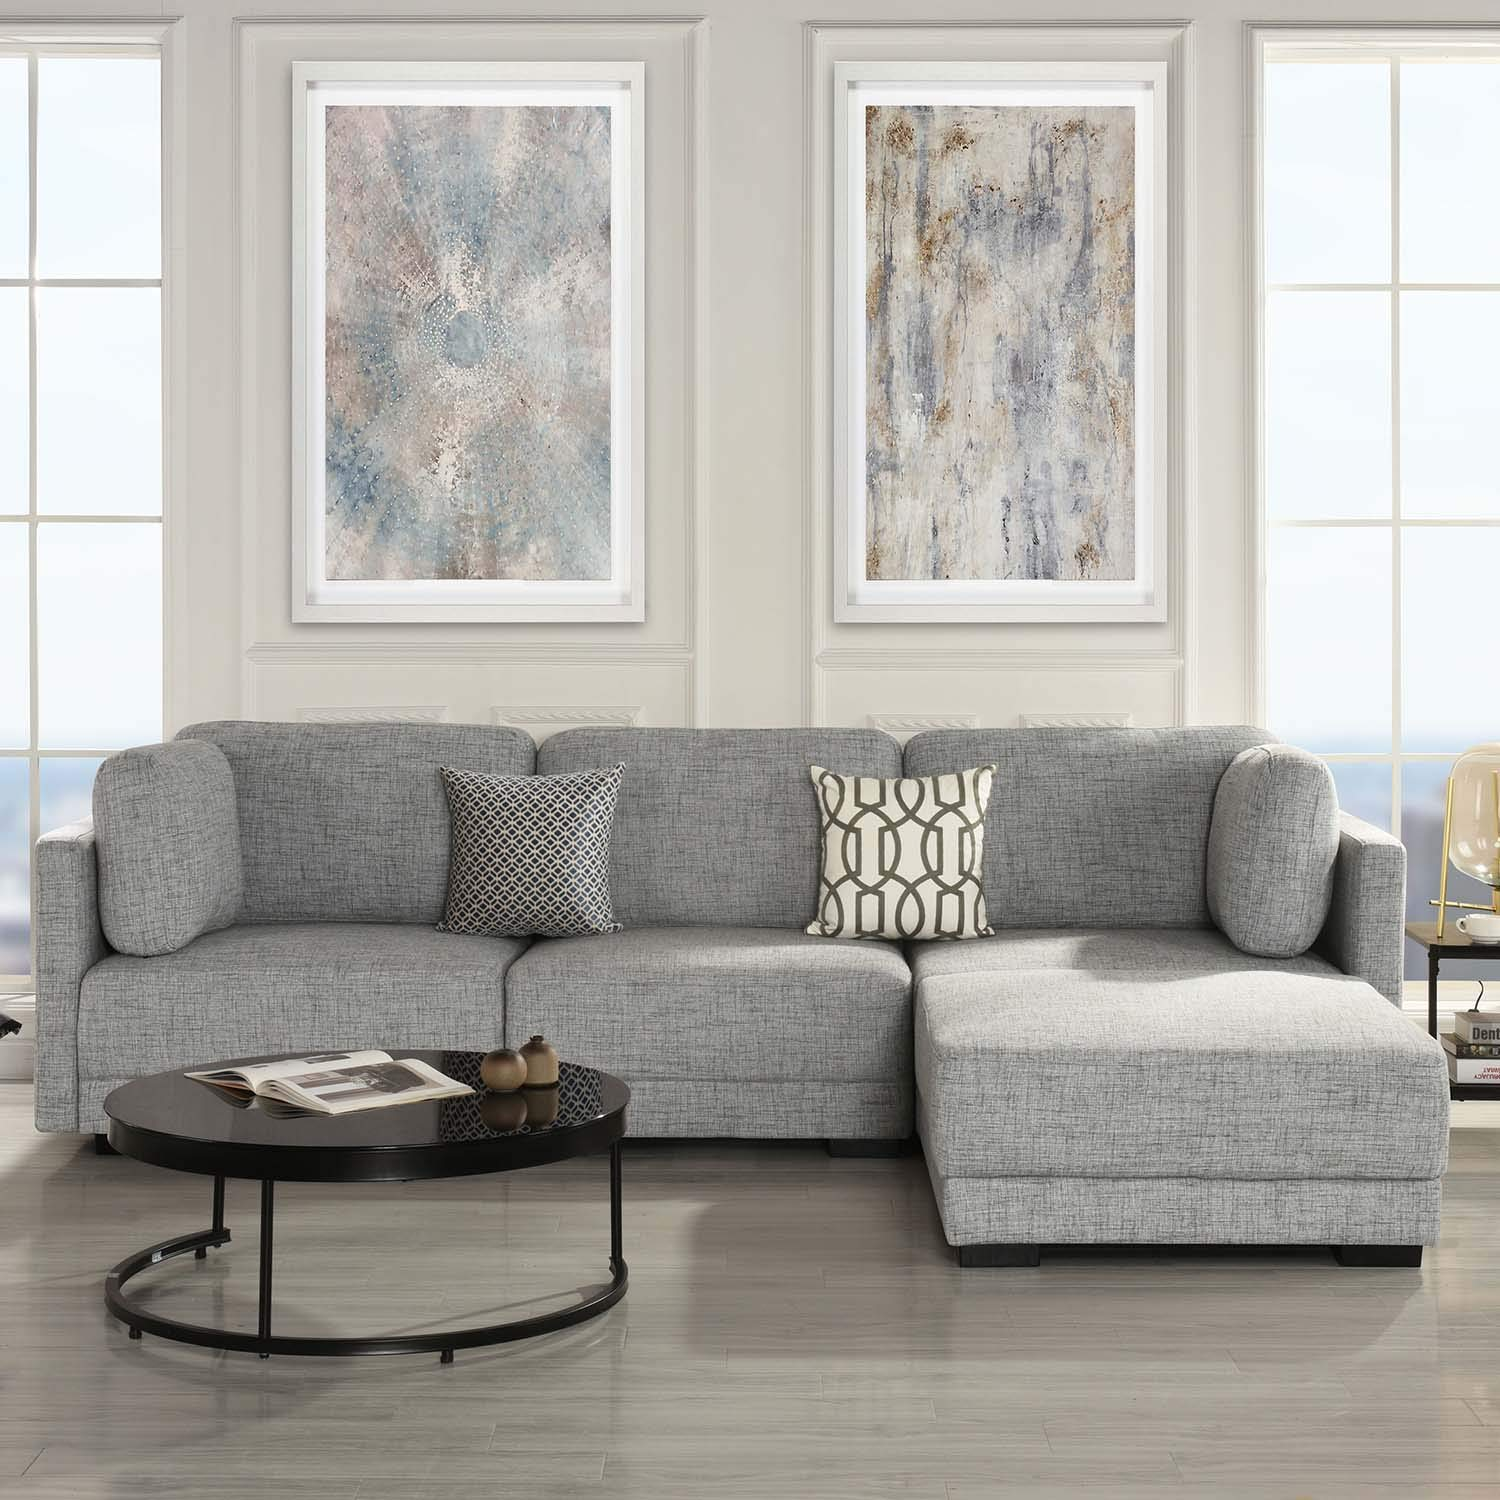 Modular Sectional Sofa Couch Convertible Sofa Sectional with Reversible Chaise Ottoman 3 Piece (Custom Couch Feature) Modern L-Shaped Sectional Sofa from 2Pc Loveseat to Chaise Ottoman Sofa, Grey by Casa AndreaMilano